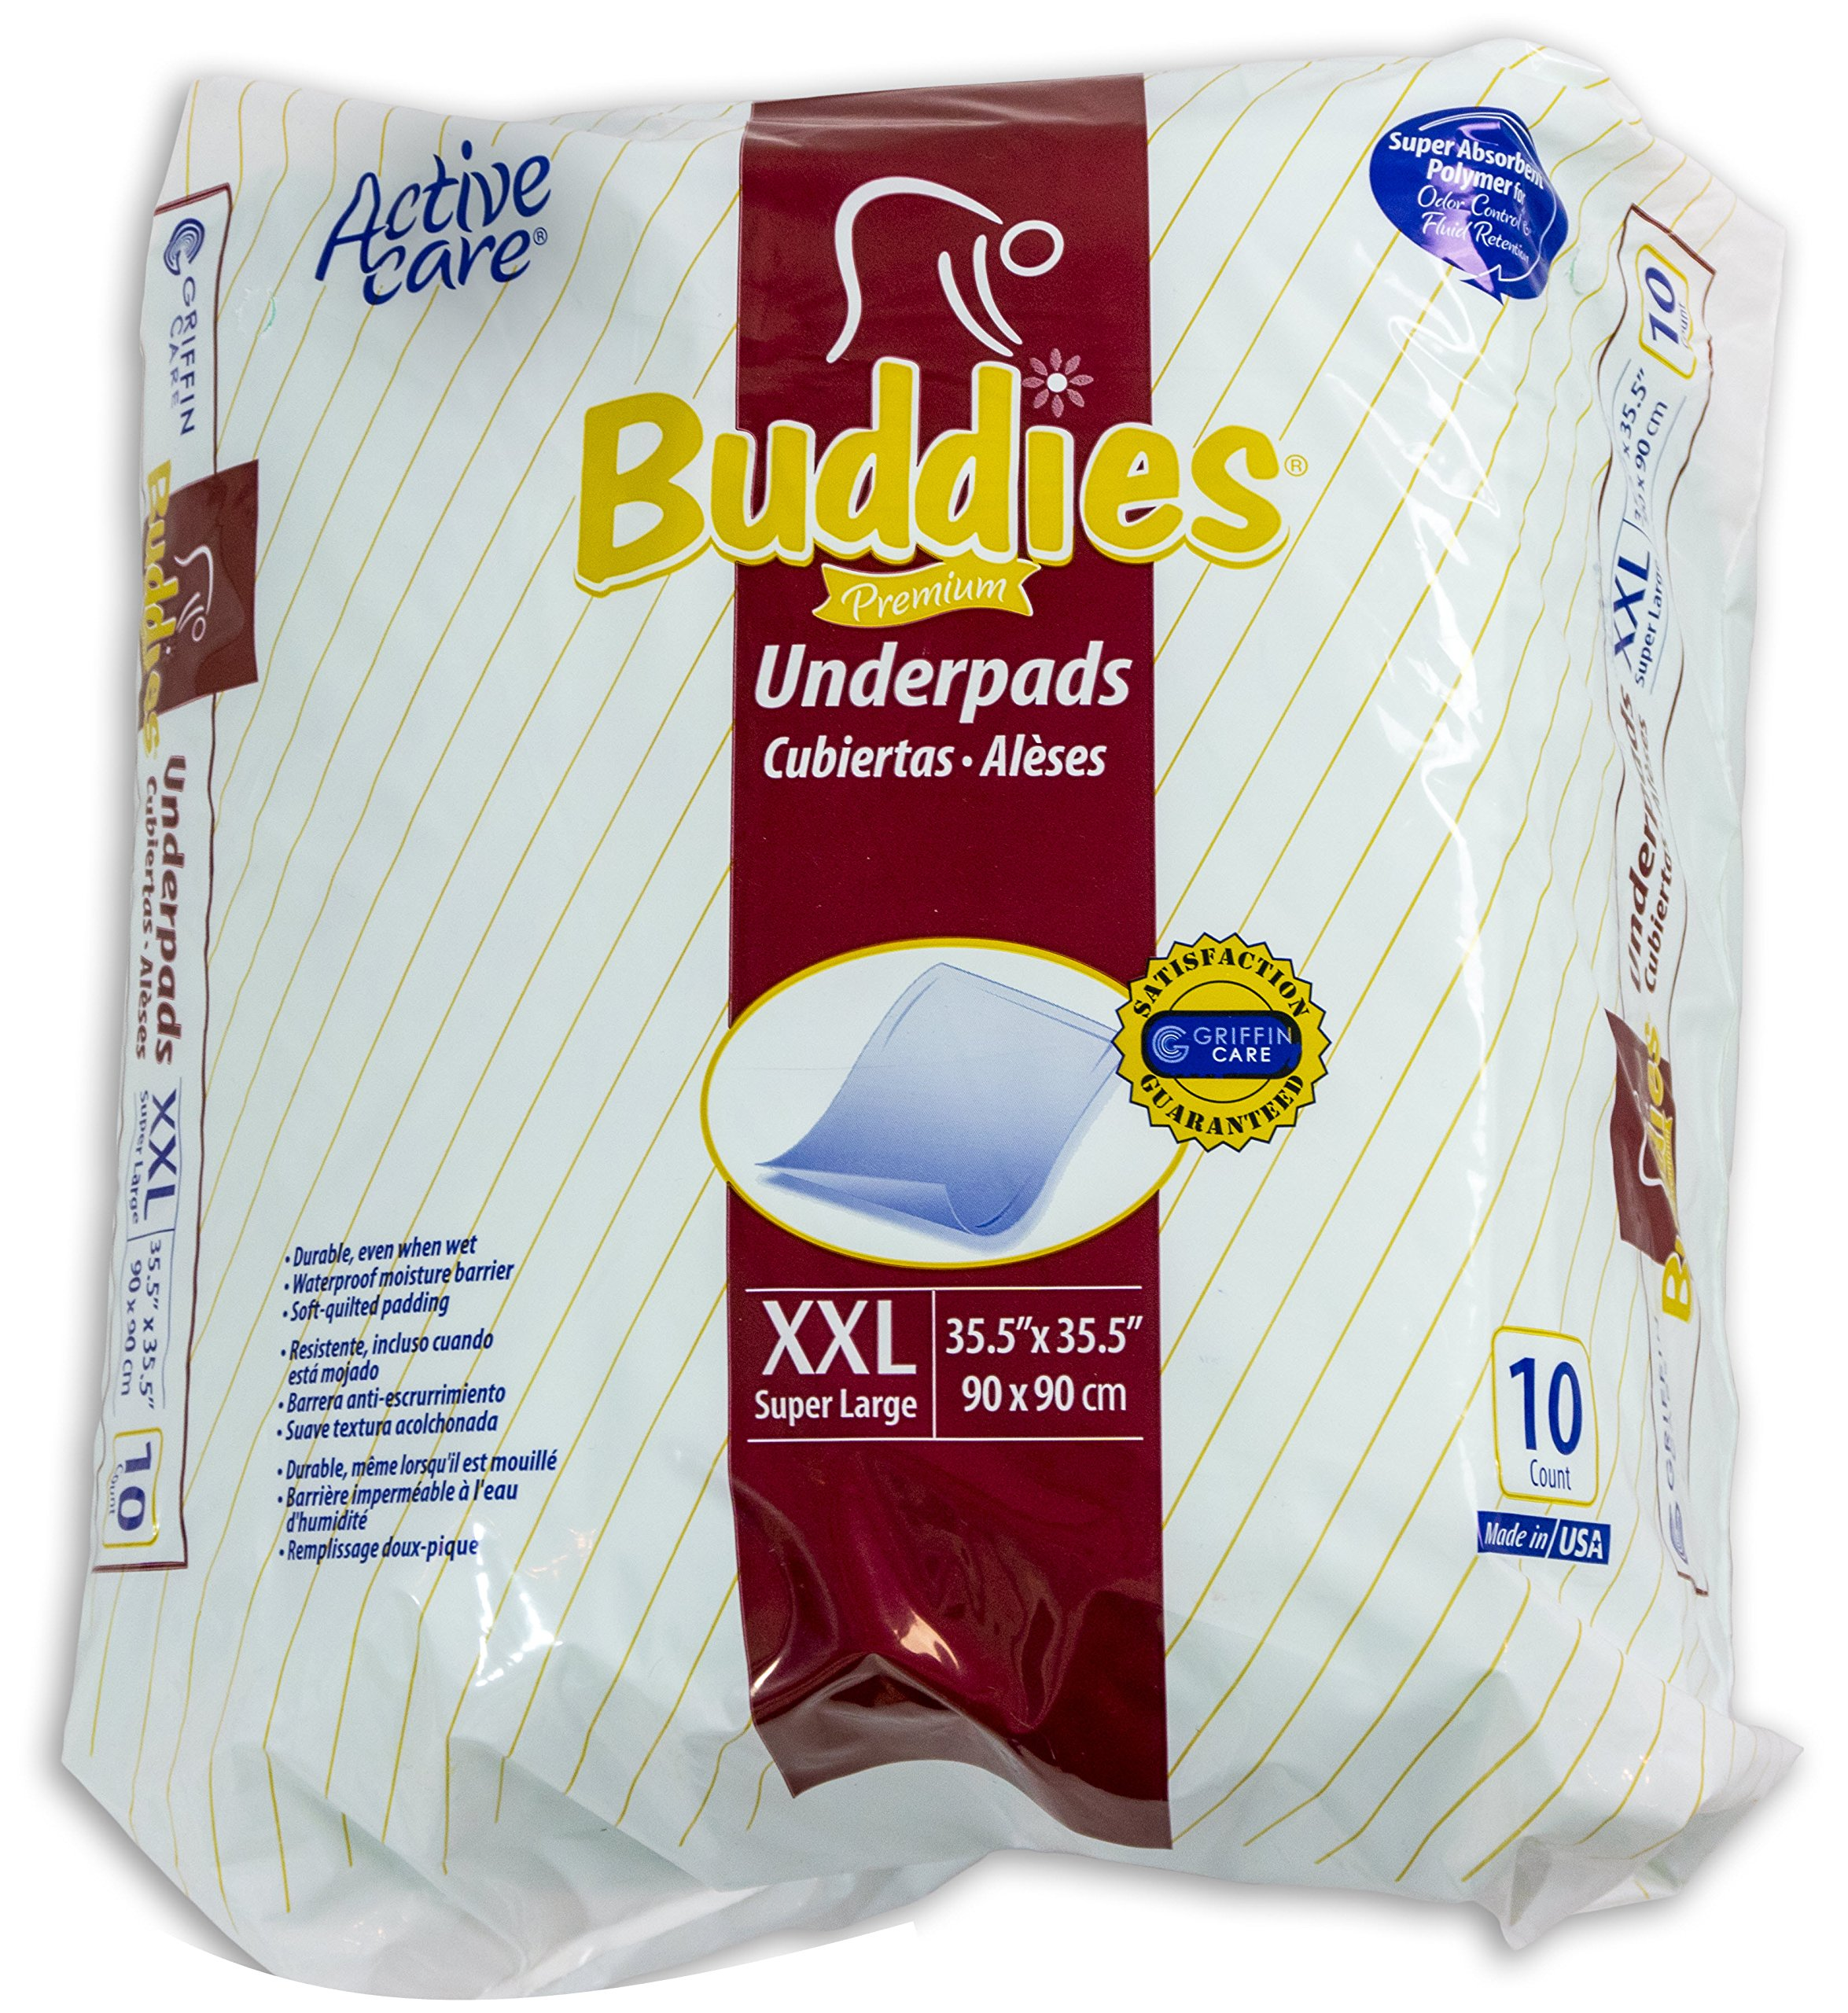 Extra Large Chux Pads 36 x 36 Disposable - Incontinence Waterproof Underpad for Adult, Child, Or Pets by Buddies